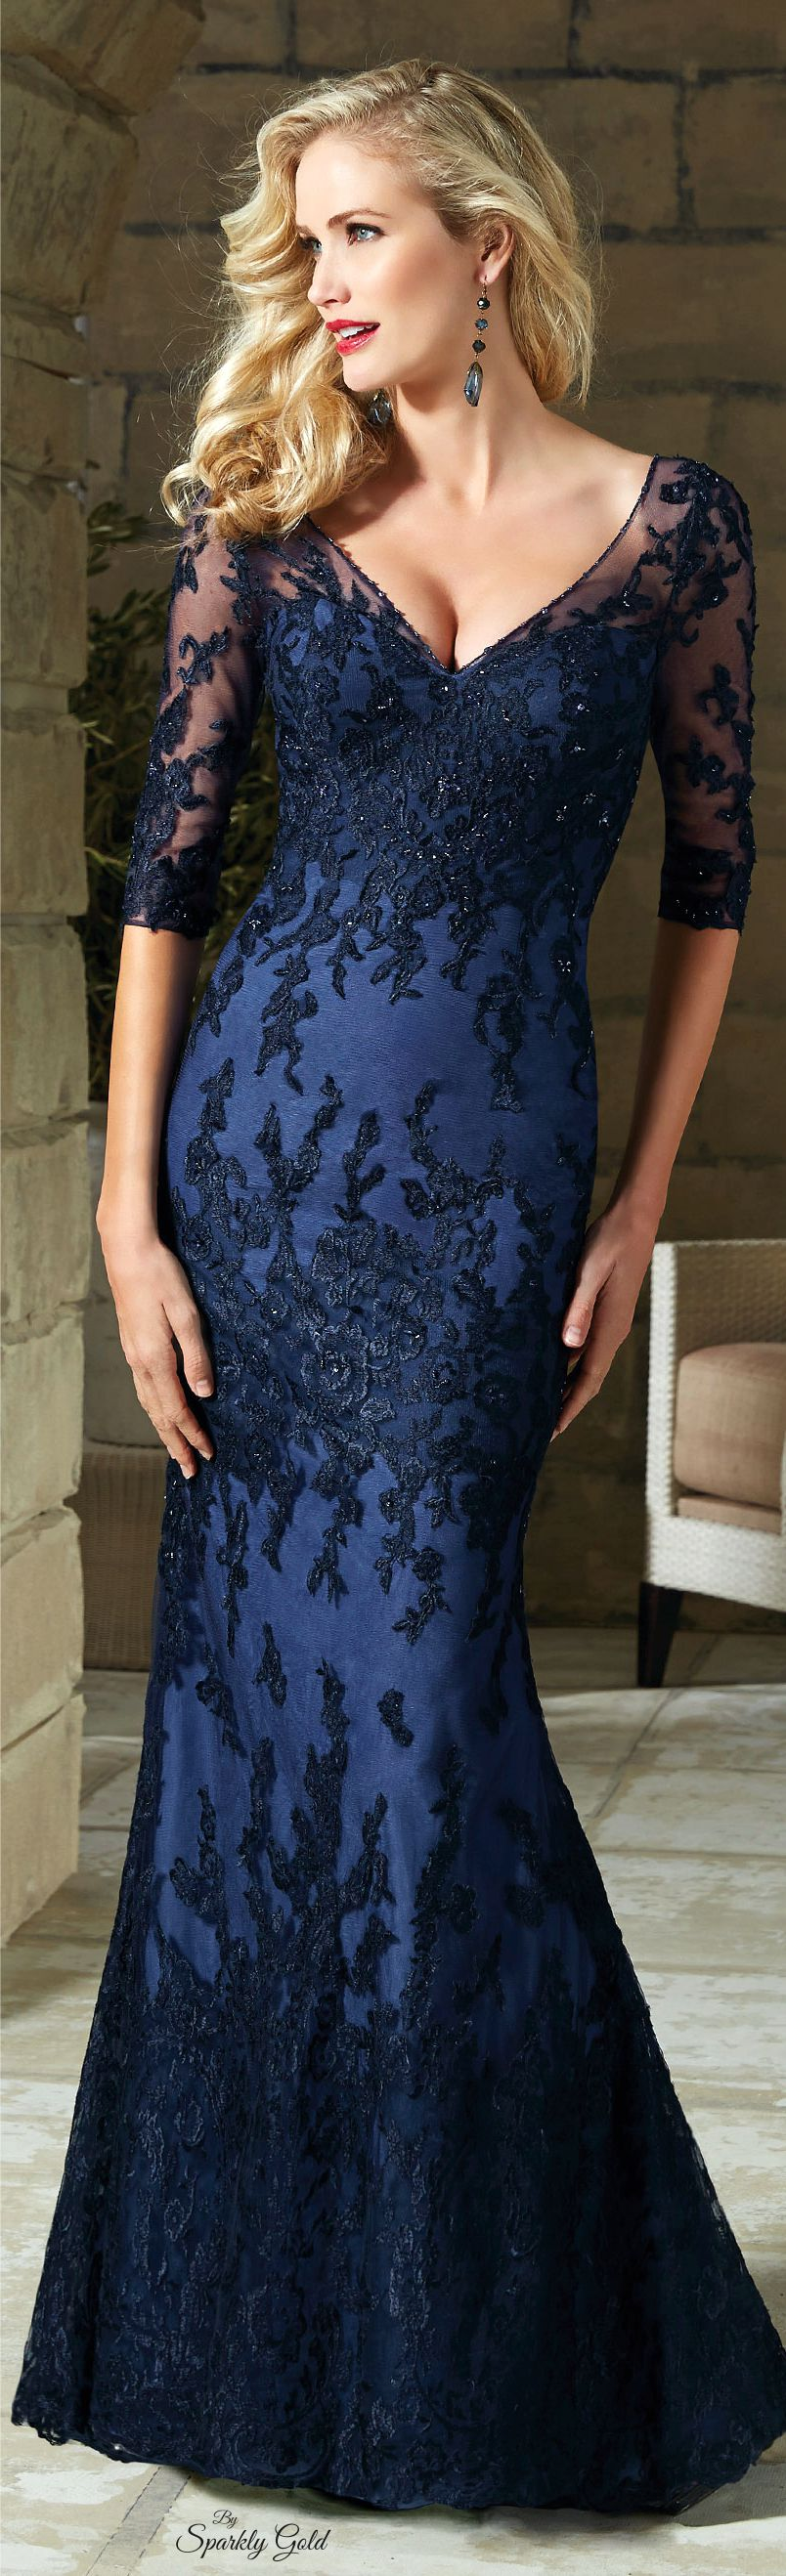 Pin by terri wells on dresses pinterest gowns dark navy blue